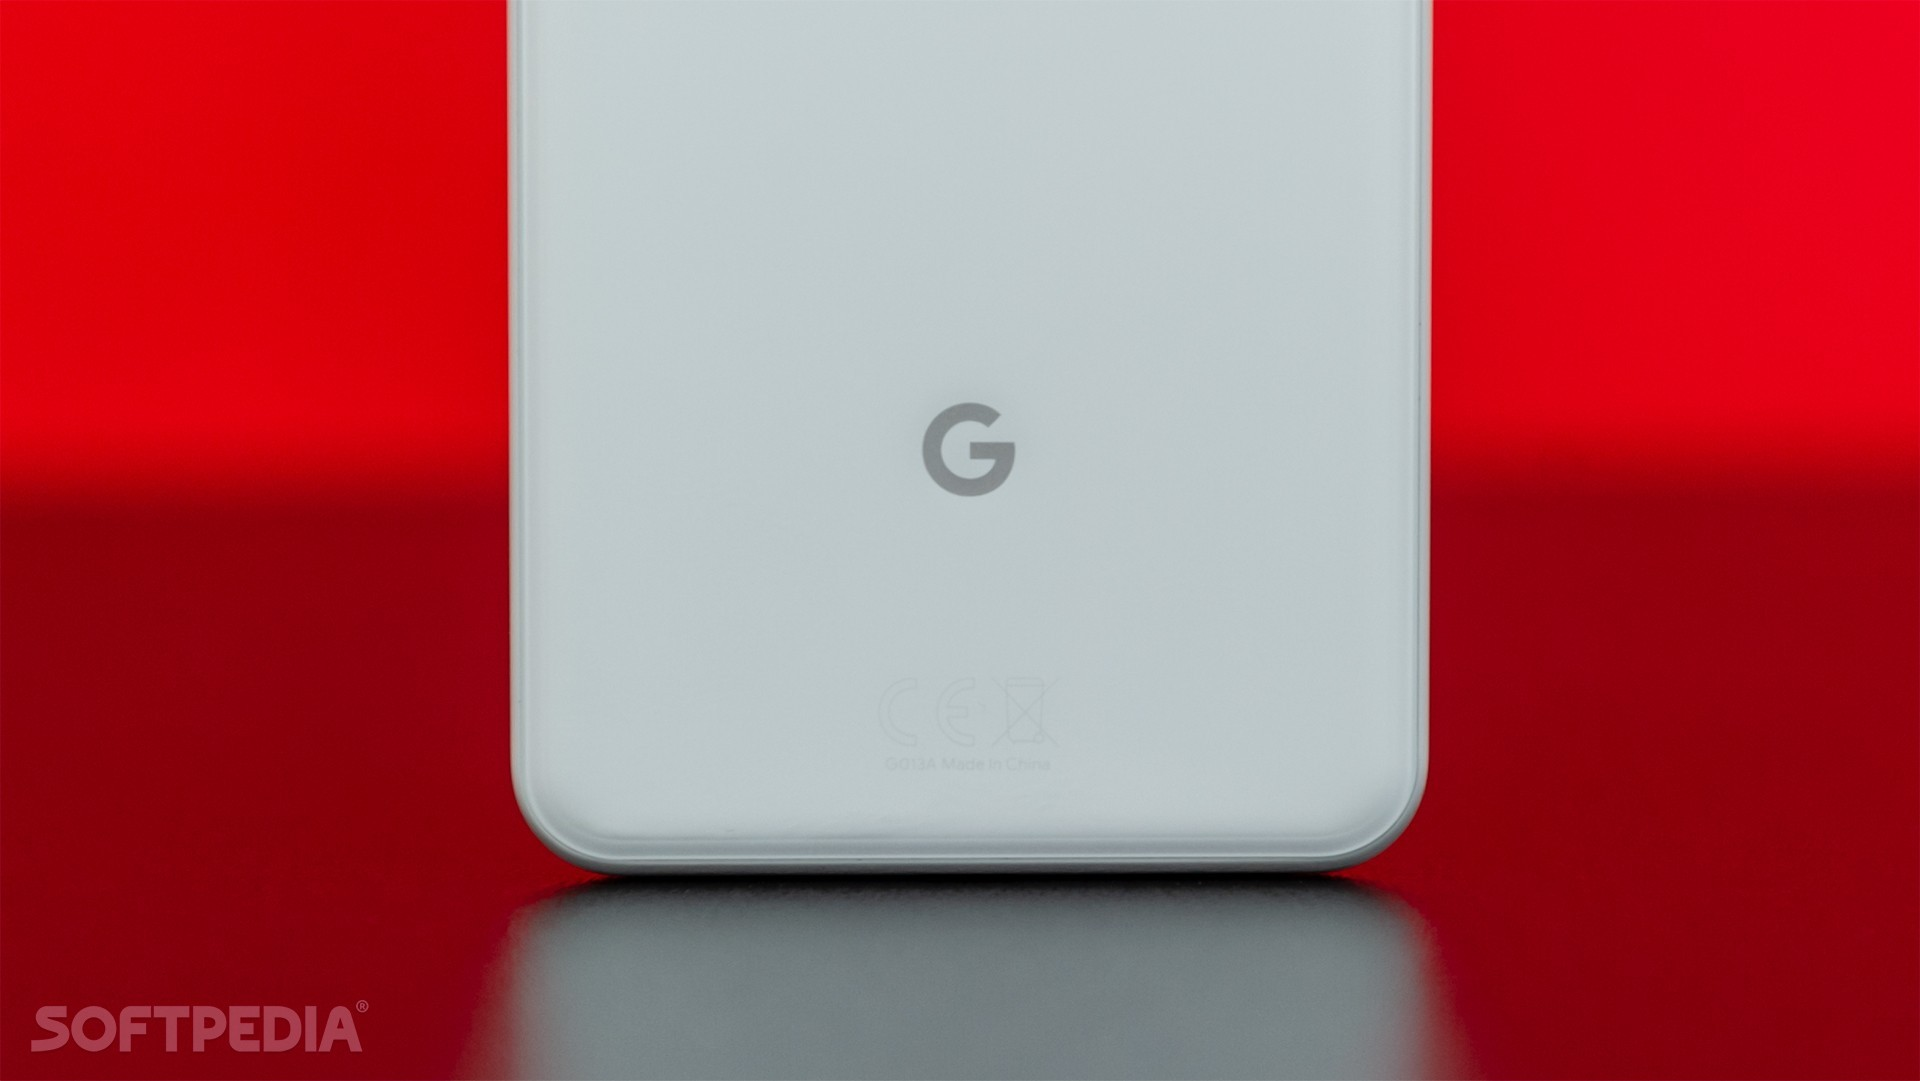 Google publishes the first Android 10 Generic System Images